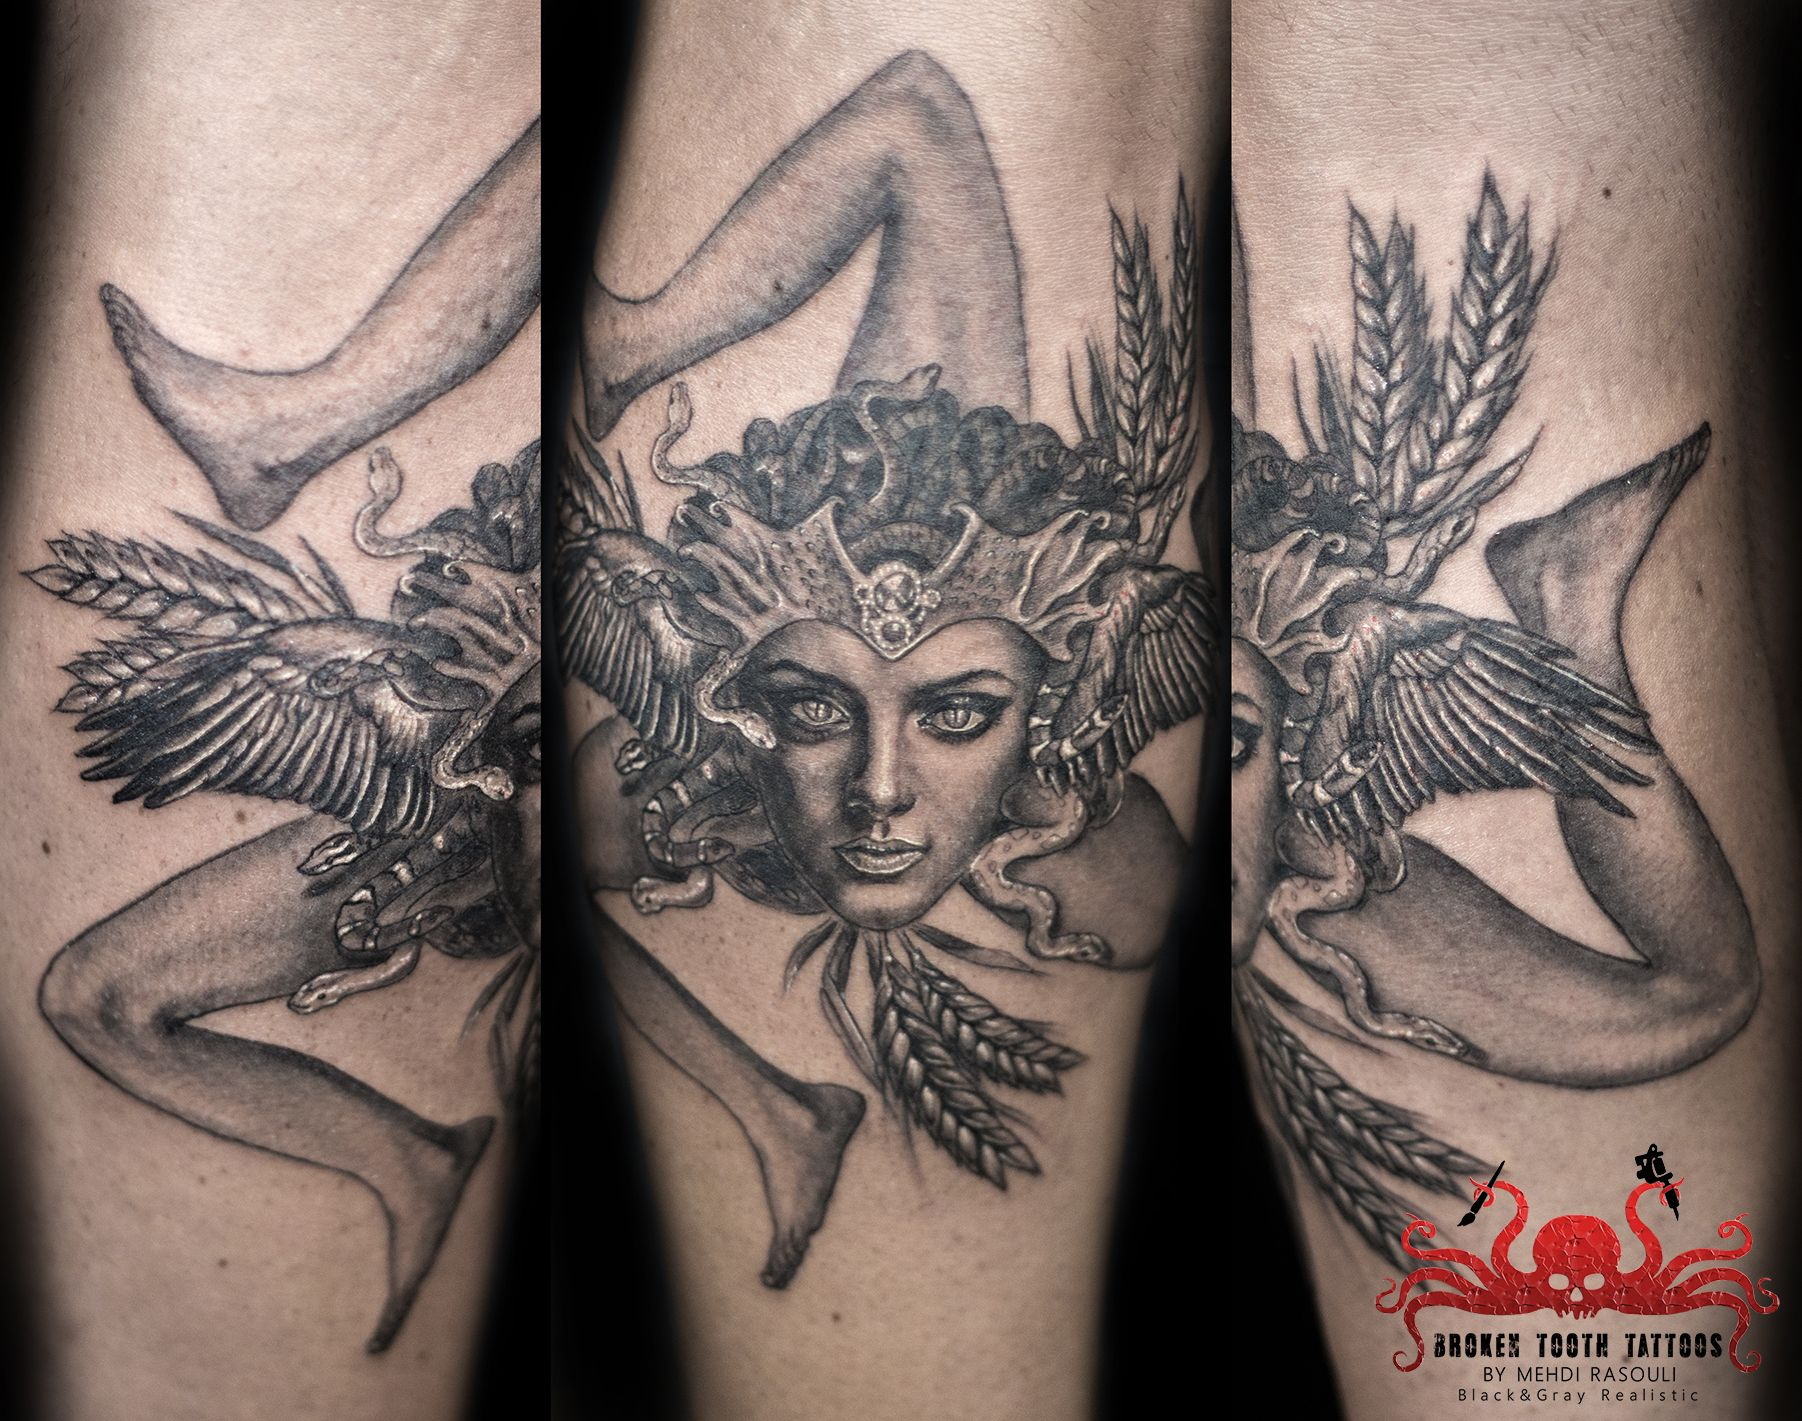 Bien connu trinacria tattoo by Mehdi Rasouli broken tooth tattoos | Sicile  WD64